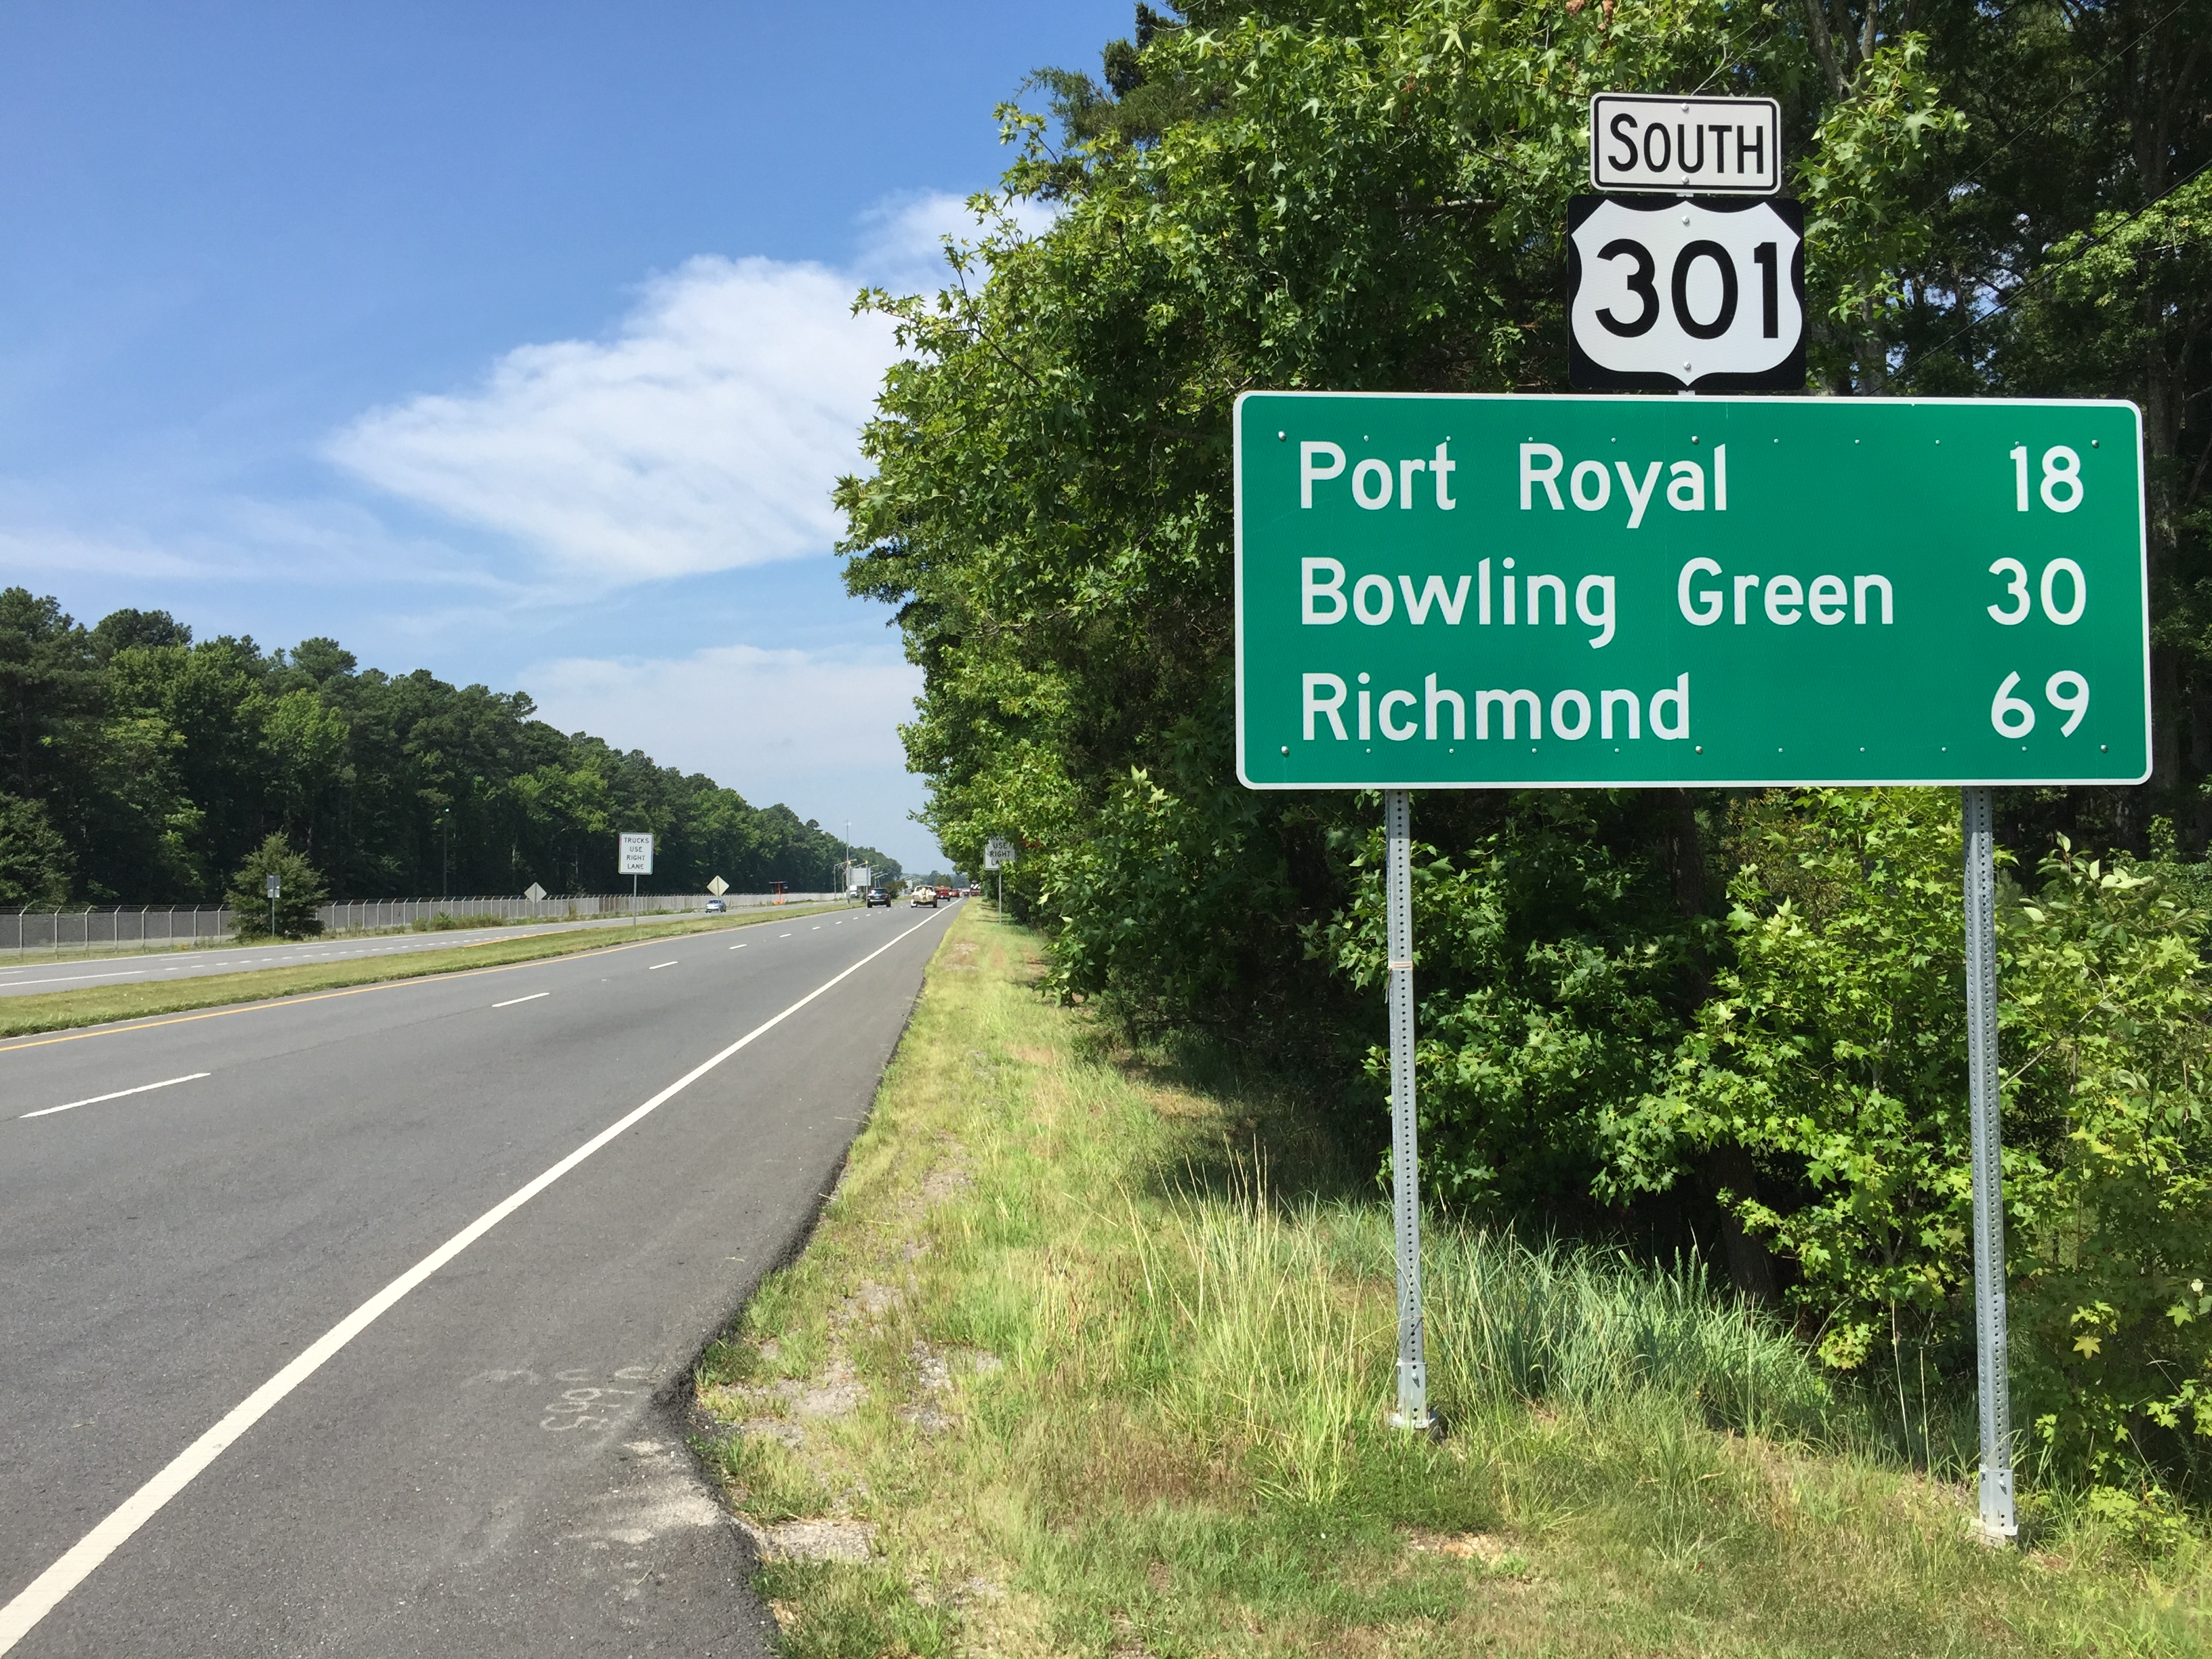 U.S. Route 301 in Virginia - Wikipedia on us route 95 map, route 301 florida map, route 301 maryland map, interstate 301 map, highway 301 florida map, delaware 301 bypass map,